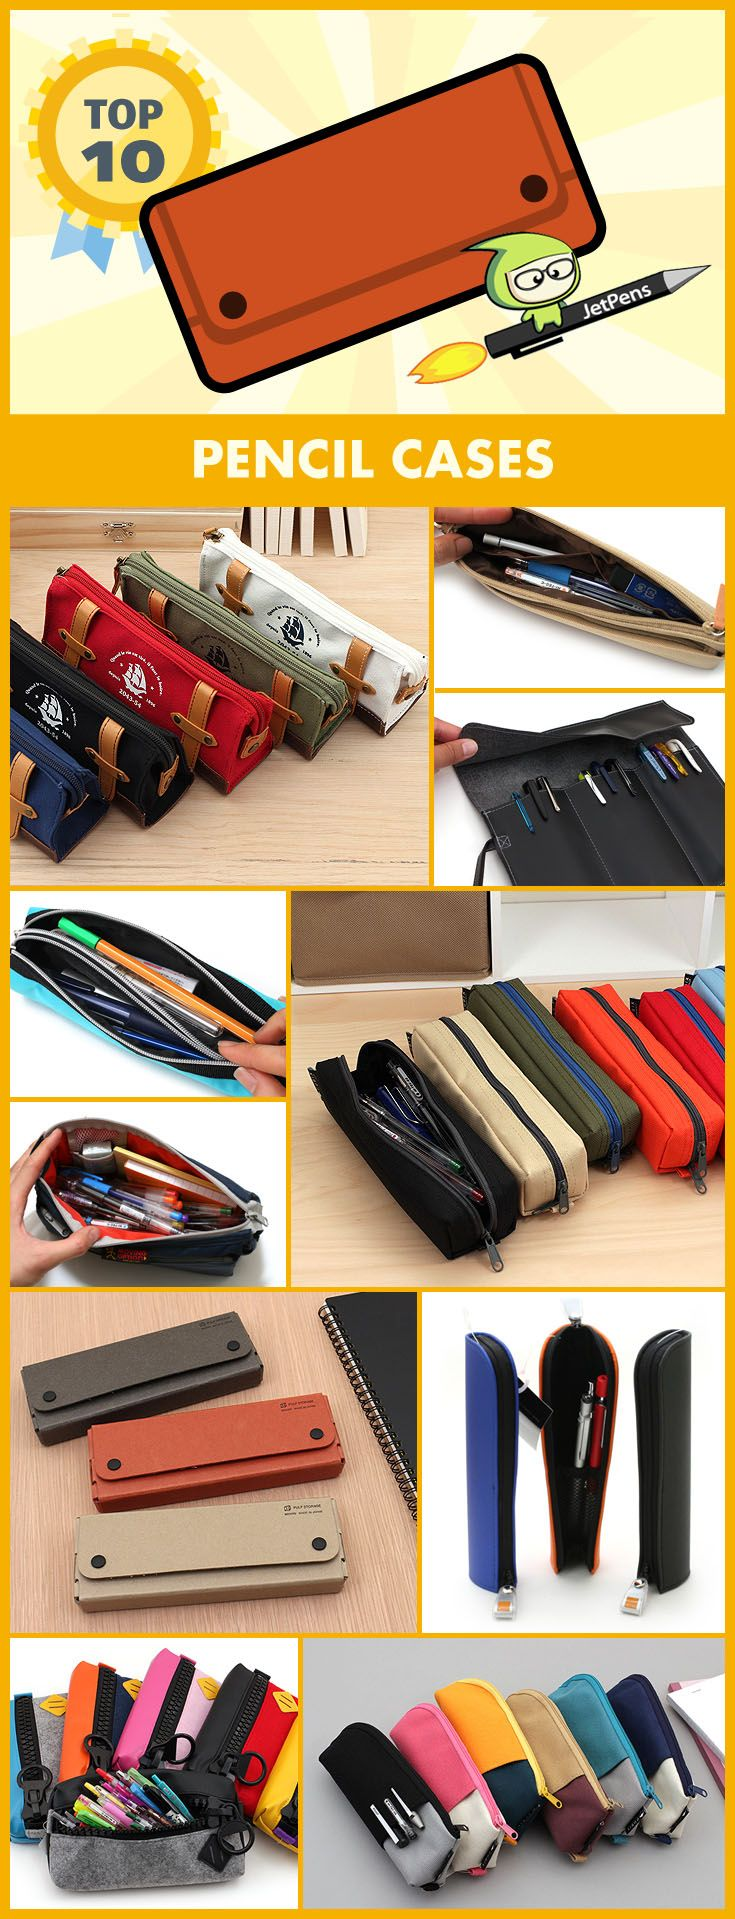 Our top-rated pencil cases can be used to store other baubles and bits!